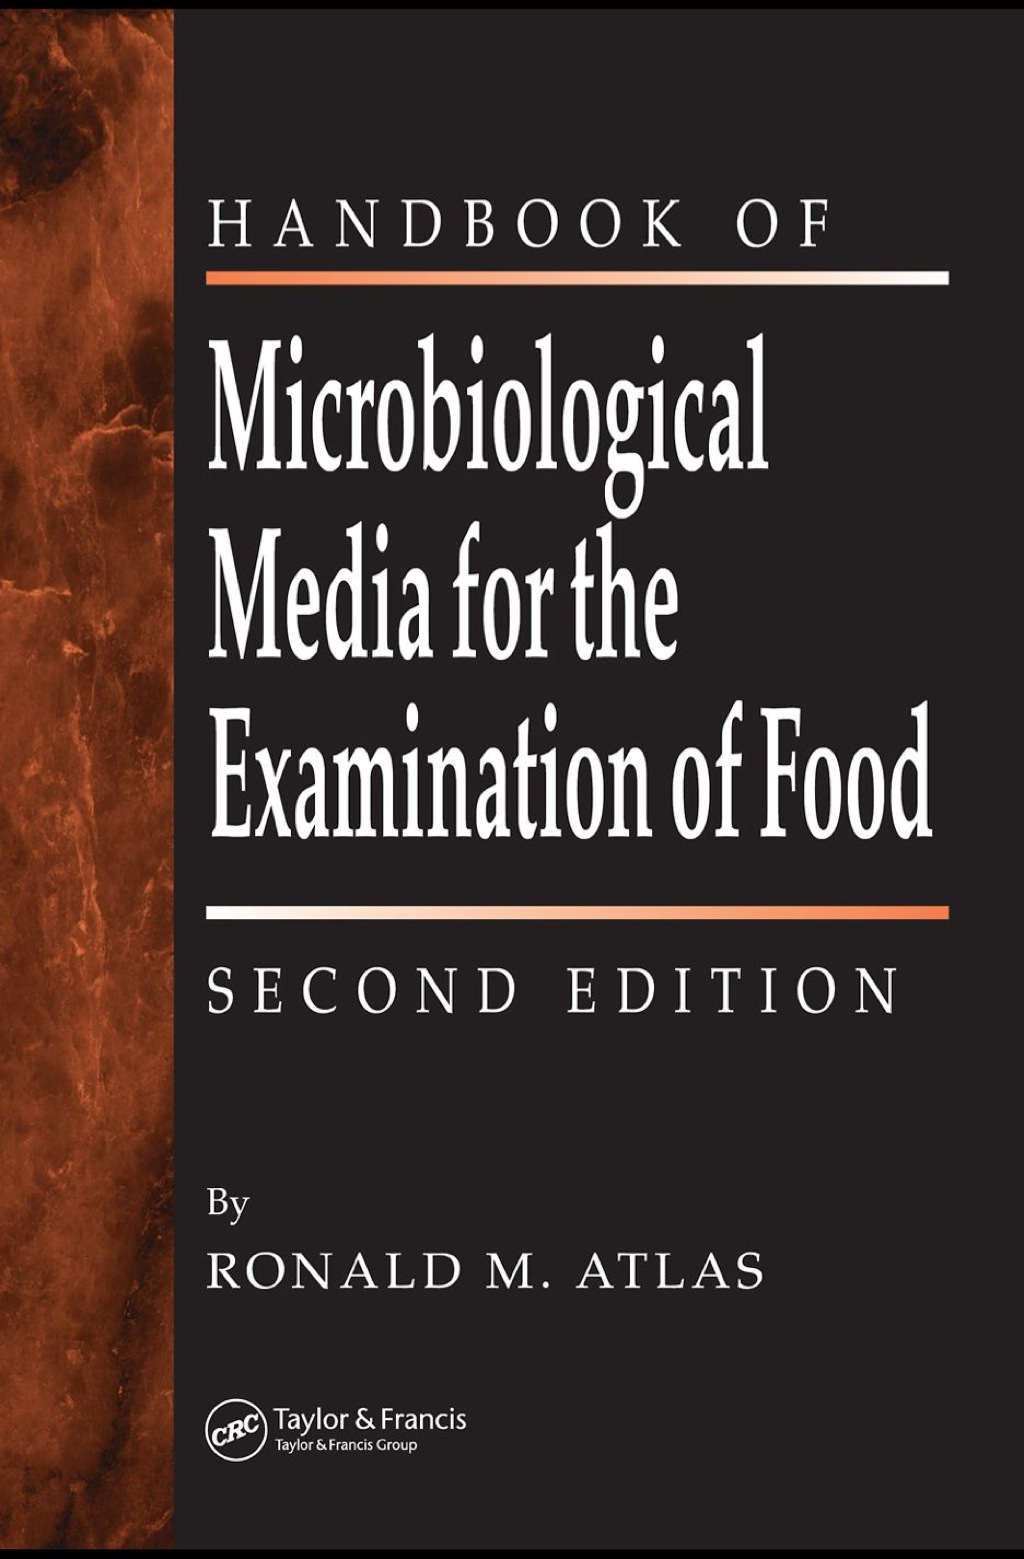 The Handbook of Microbiological Media for the Examination of Food (ebook) eBooks